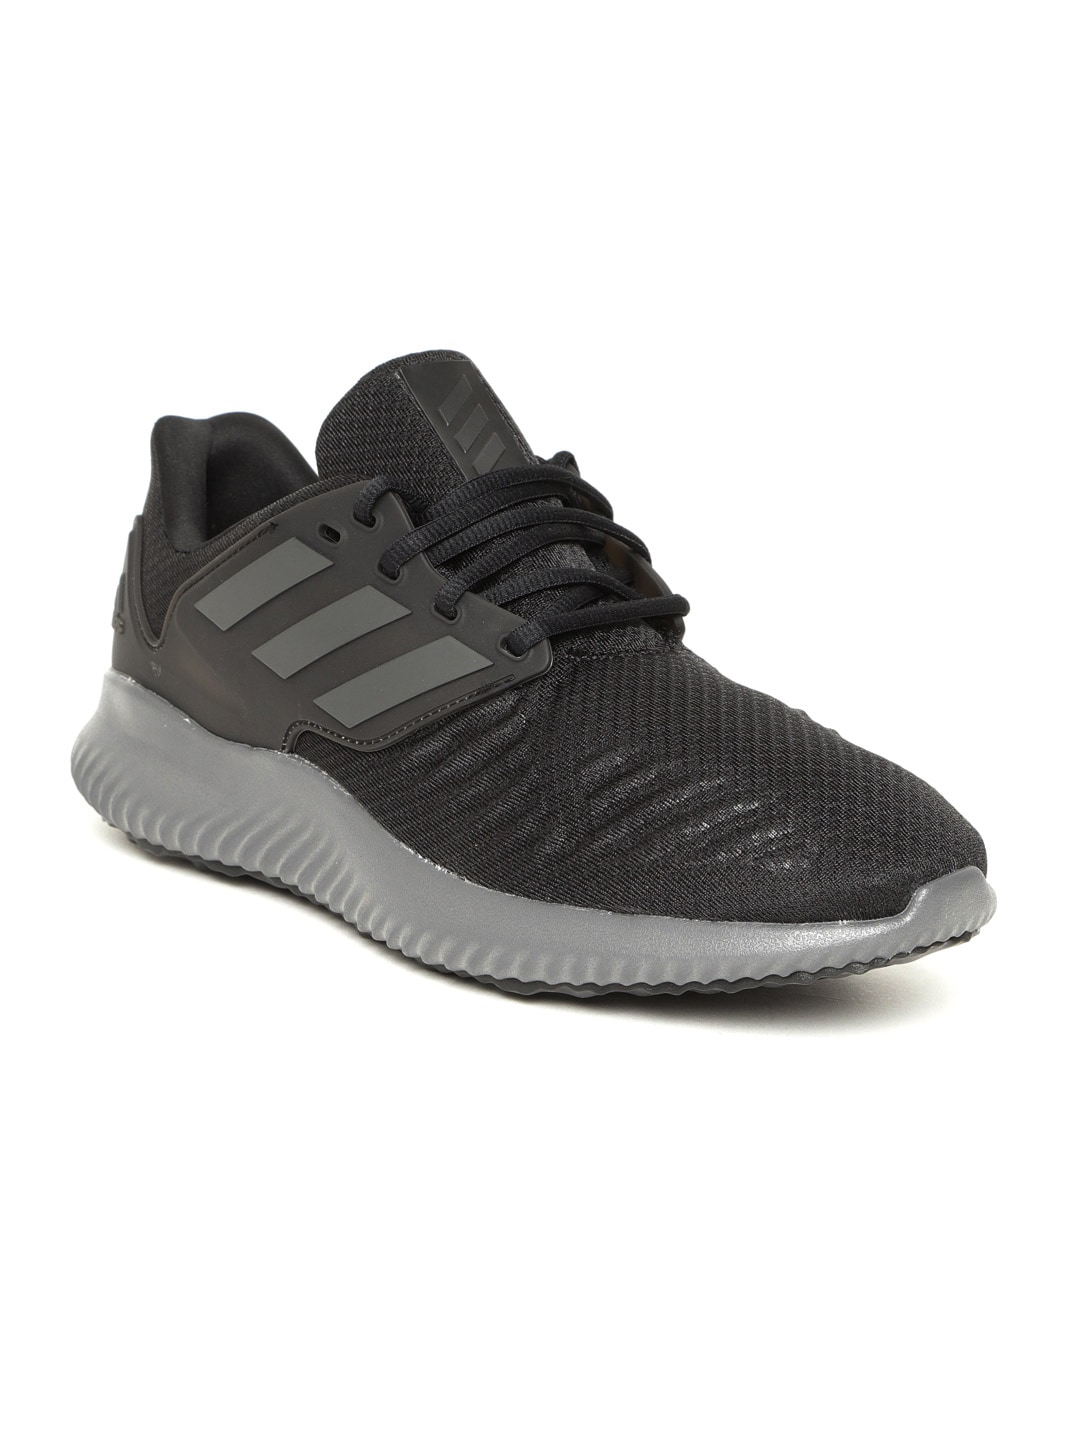 184fe8a0722b8 Buy ADIDAS Men Black Alphabounce RC.2 Running Shoes - Sports Shoes ...